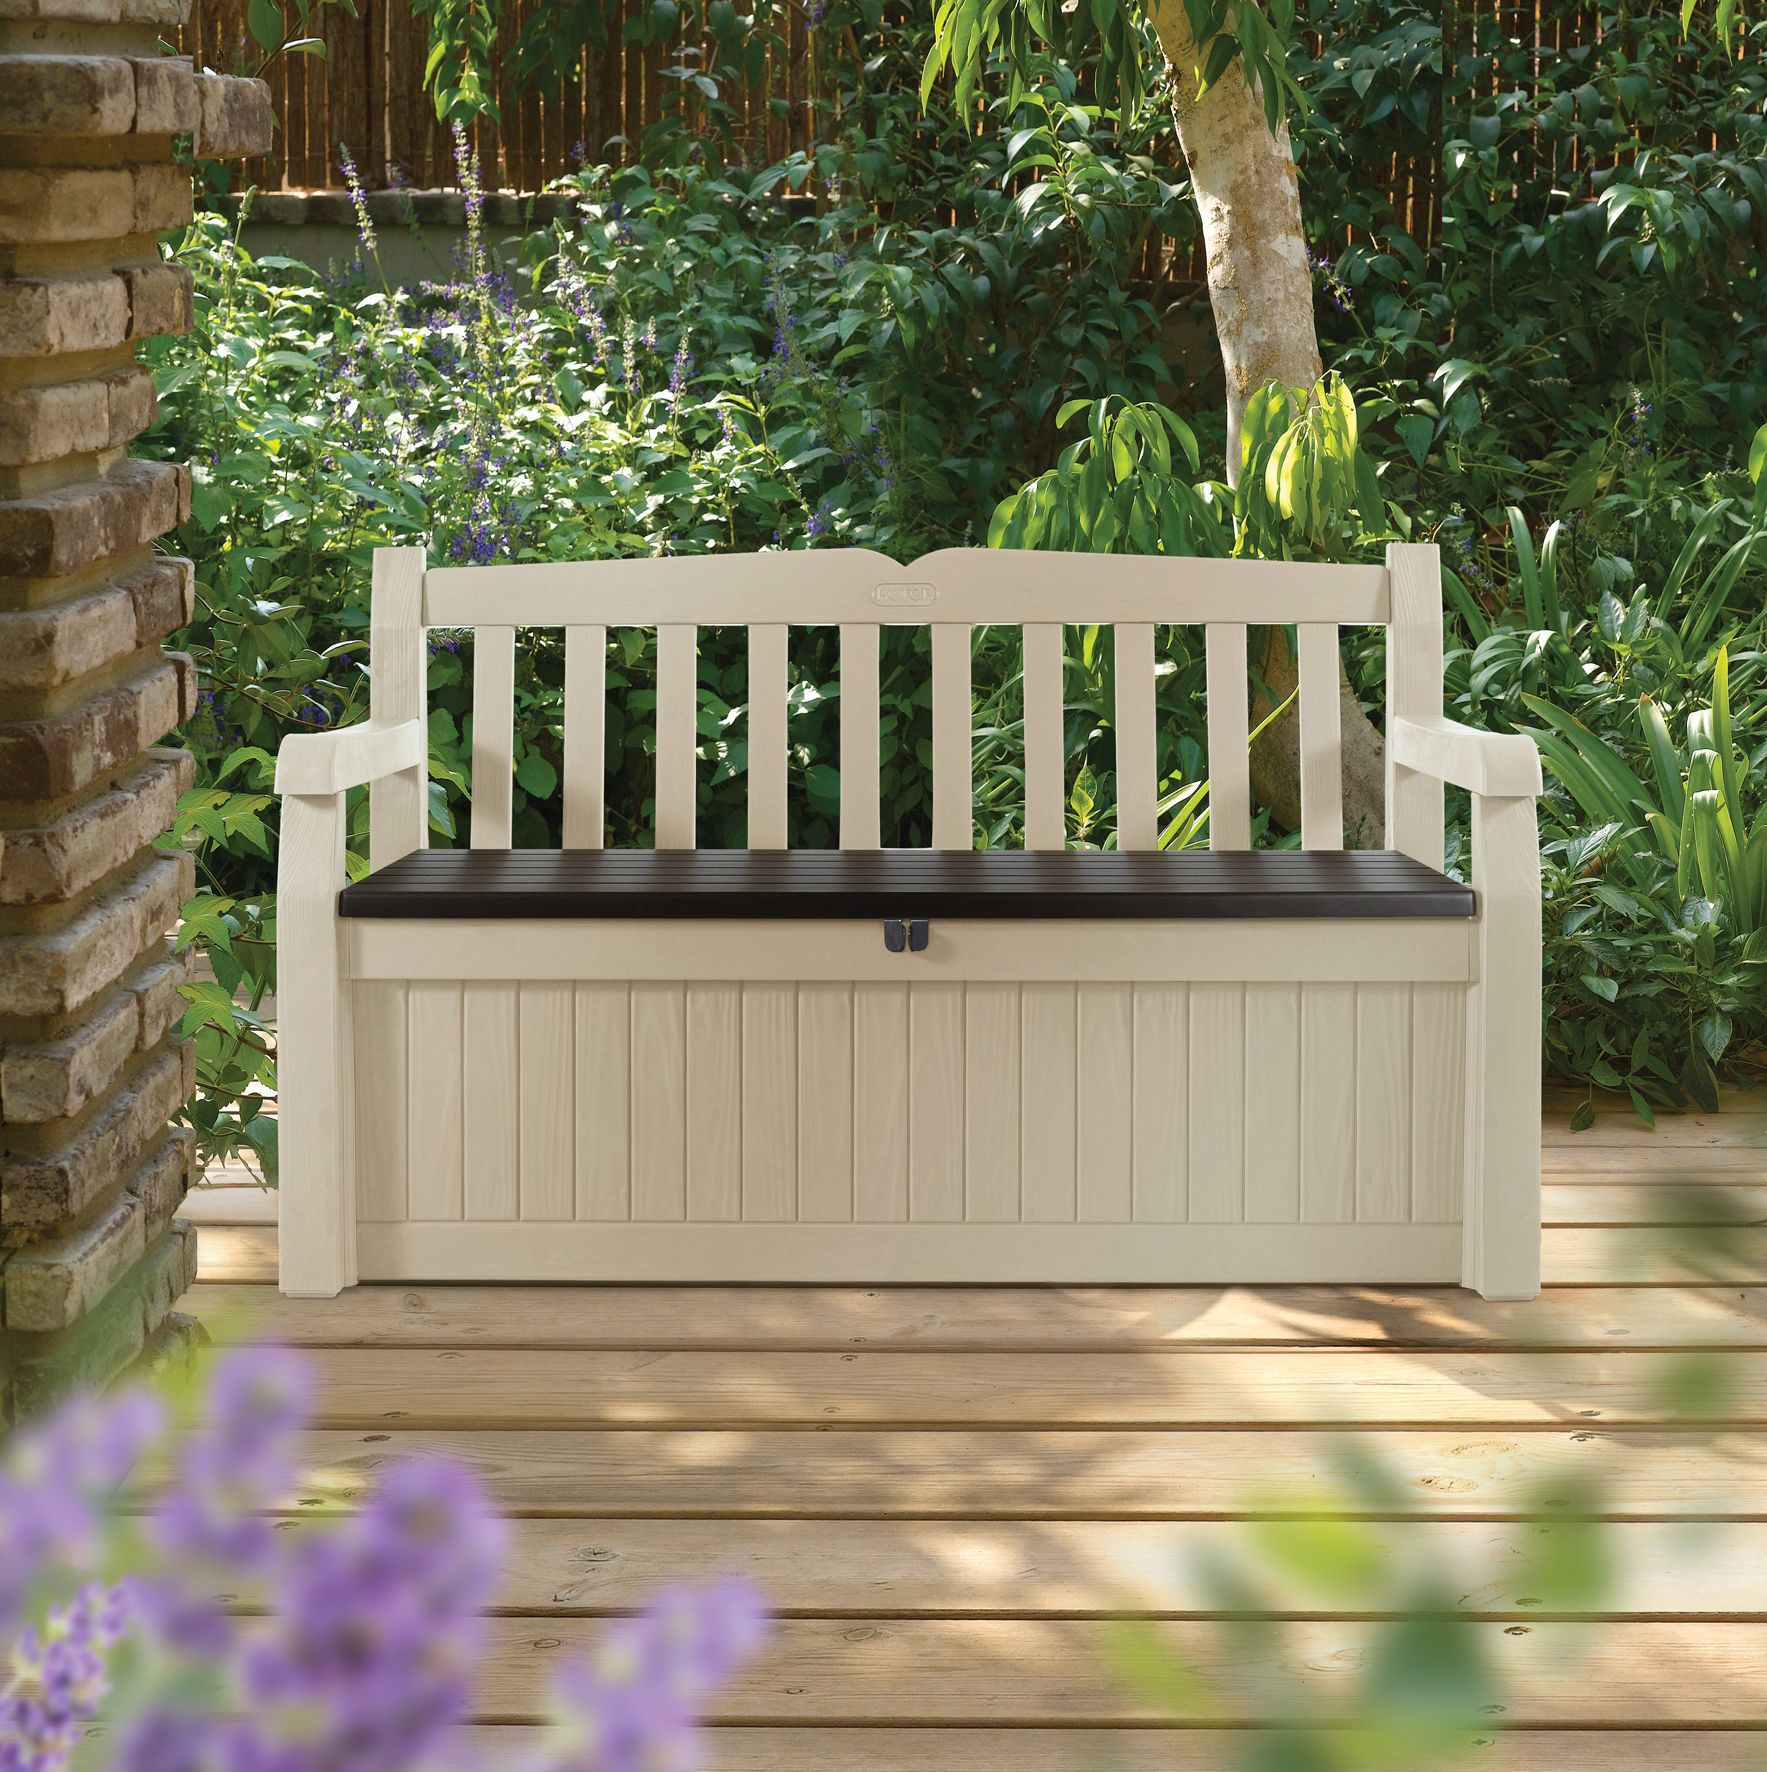 Eden plastic garden storage bench departments diy at b q for Banc coffre de jardin